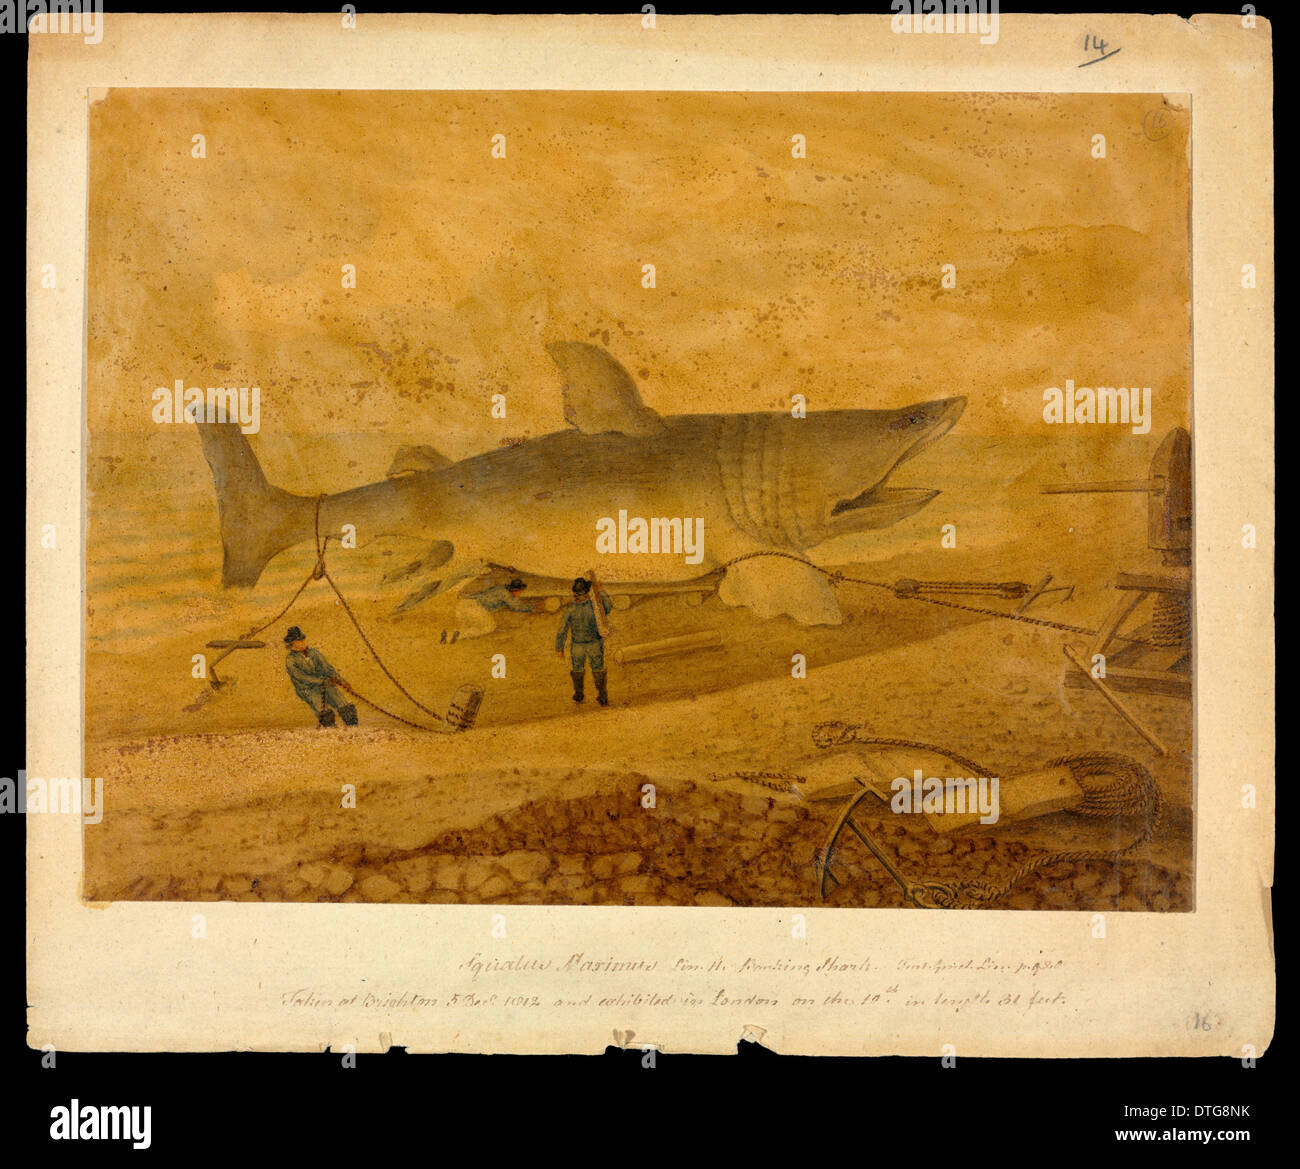 Squalus maximus, Basking shark taken at Brighton 5 Dec 1812 and exhibited in London on the 19th, in length 31 feet - Stock Image